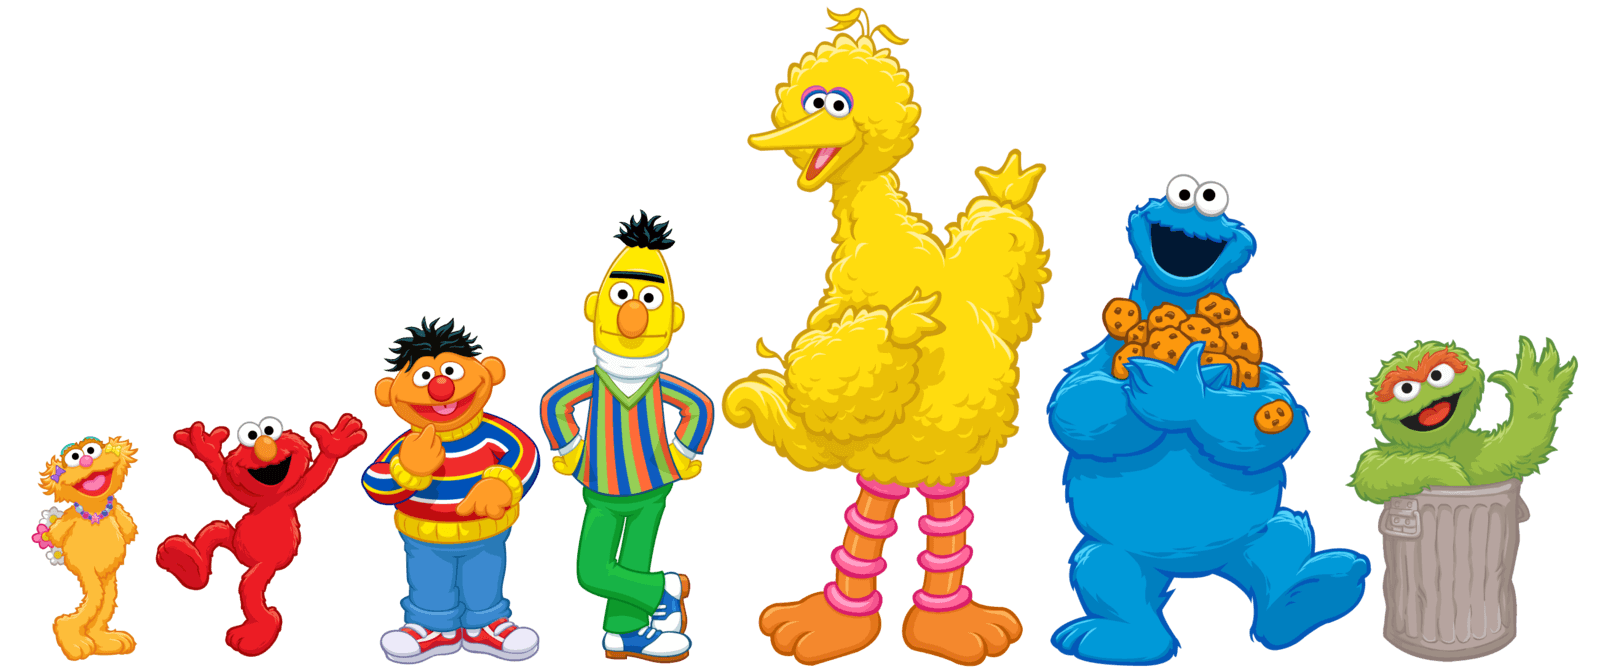 Sesame Street Wallpapers - Wallpaper Cave